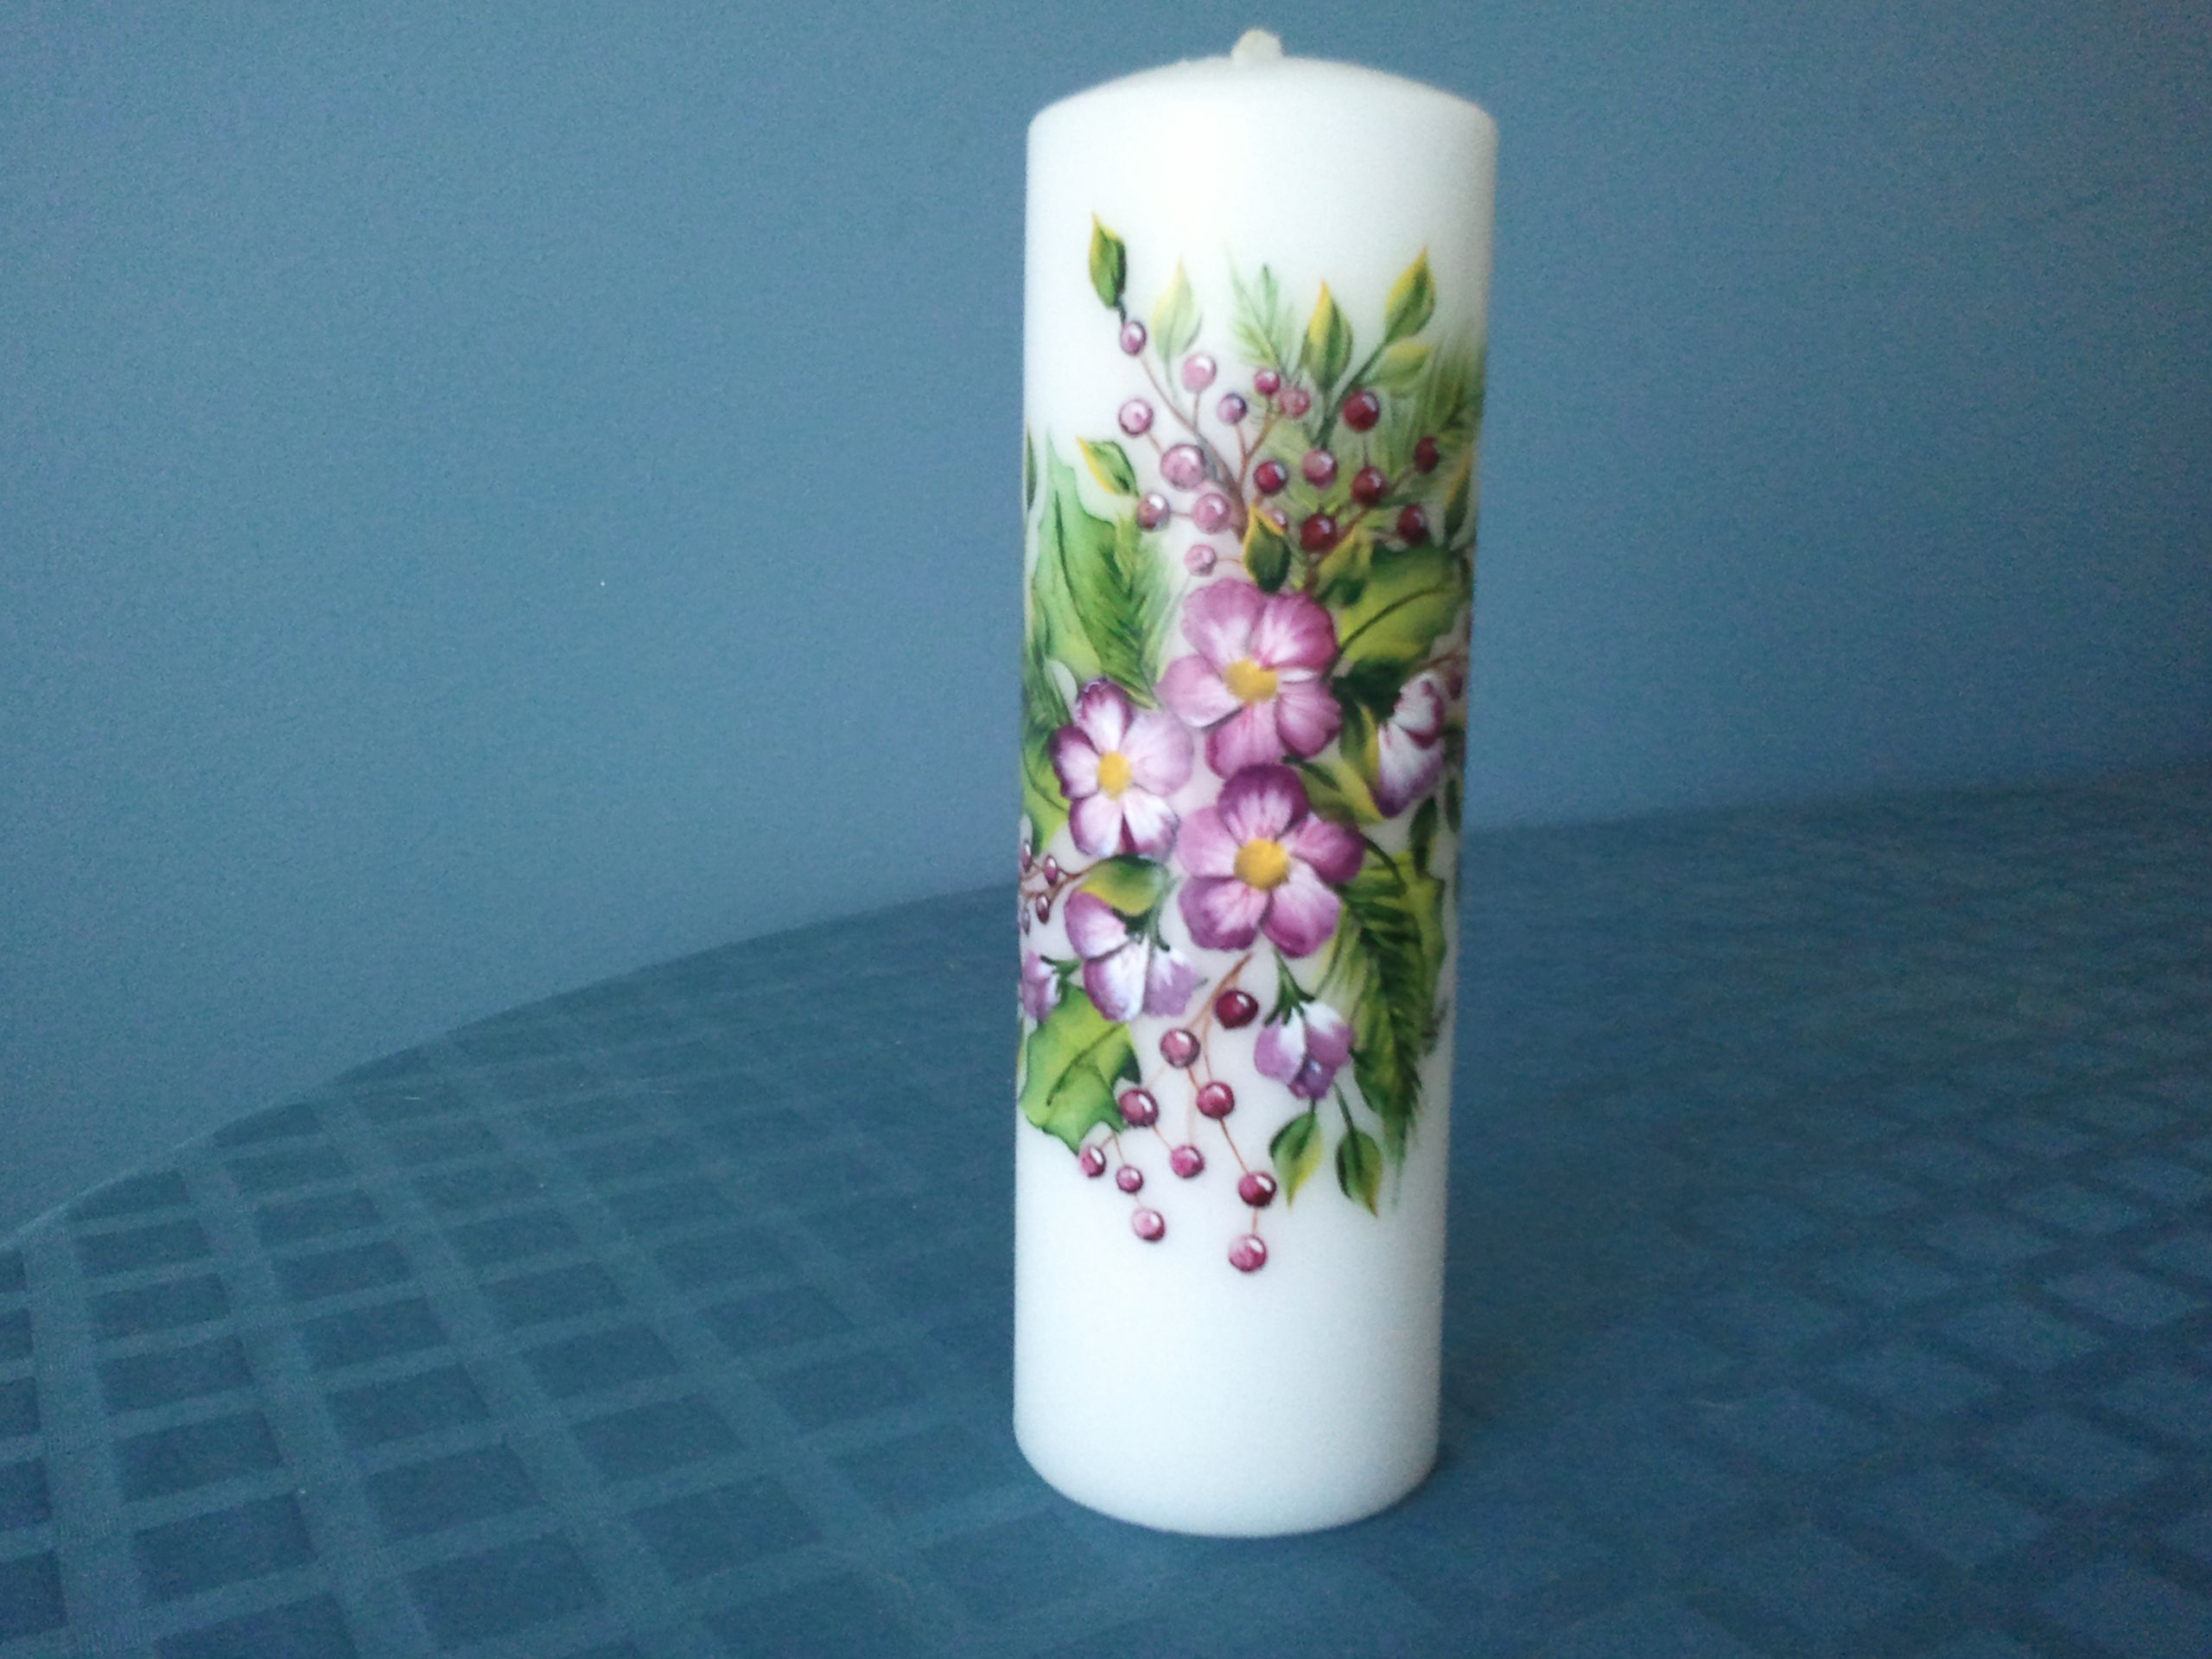 Decorative Candles For Sale Hand Painted Holiday Themed Pillar Candle On Sale In My